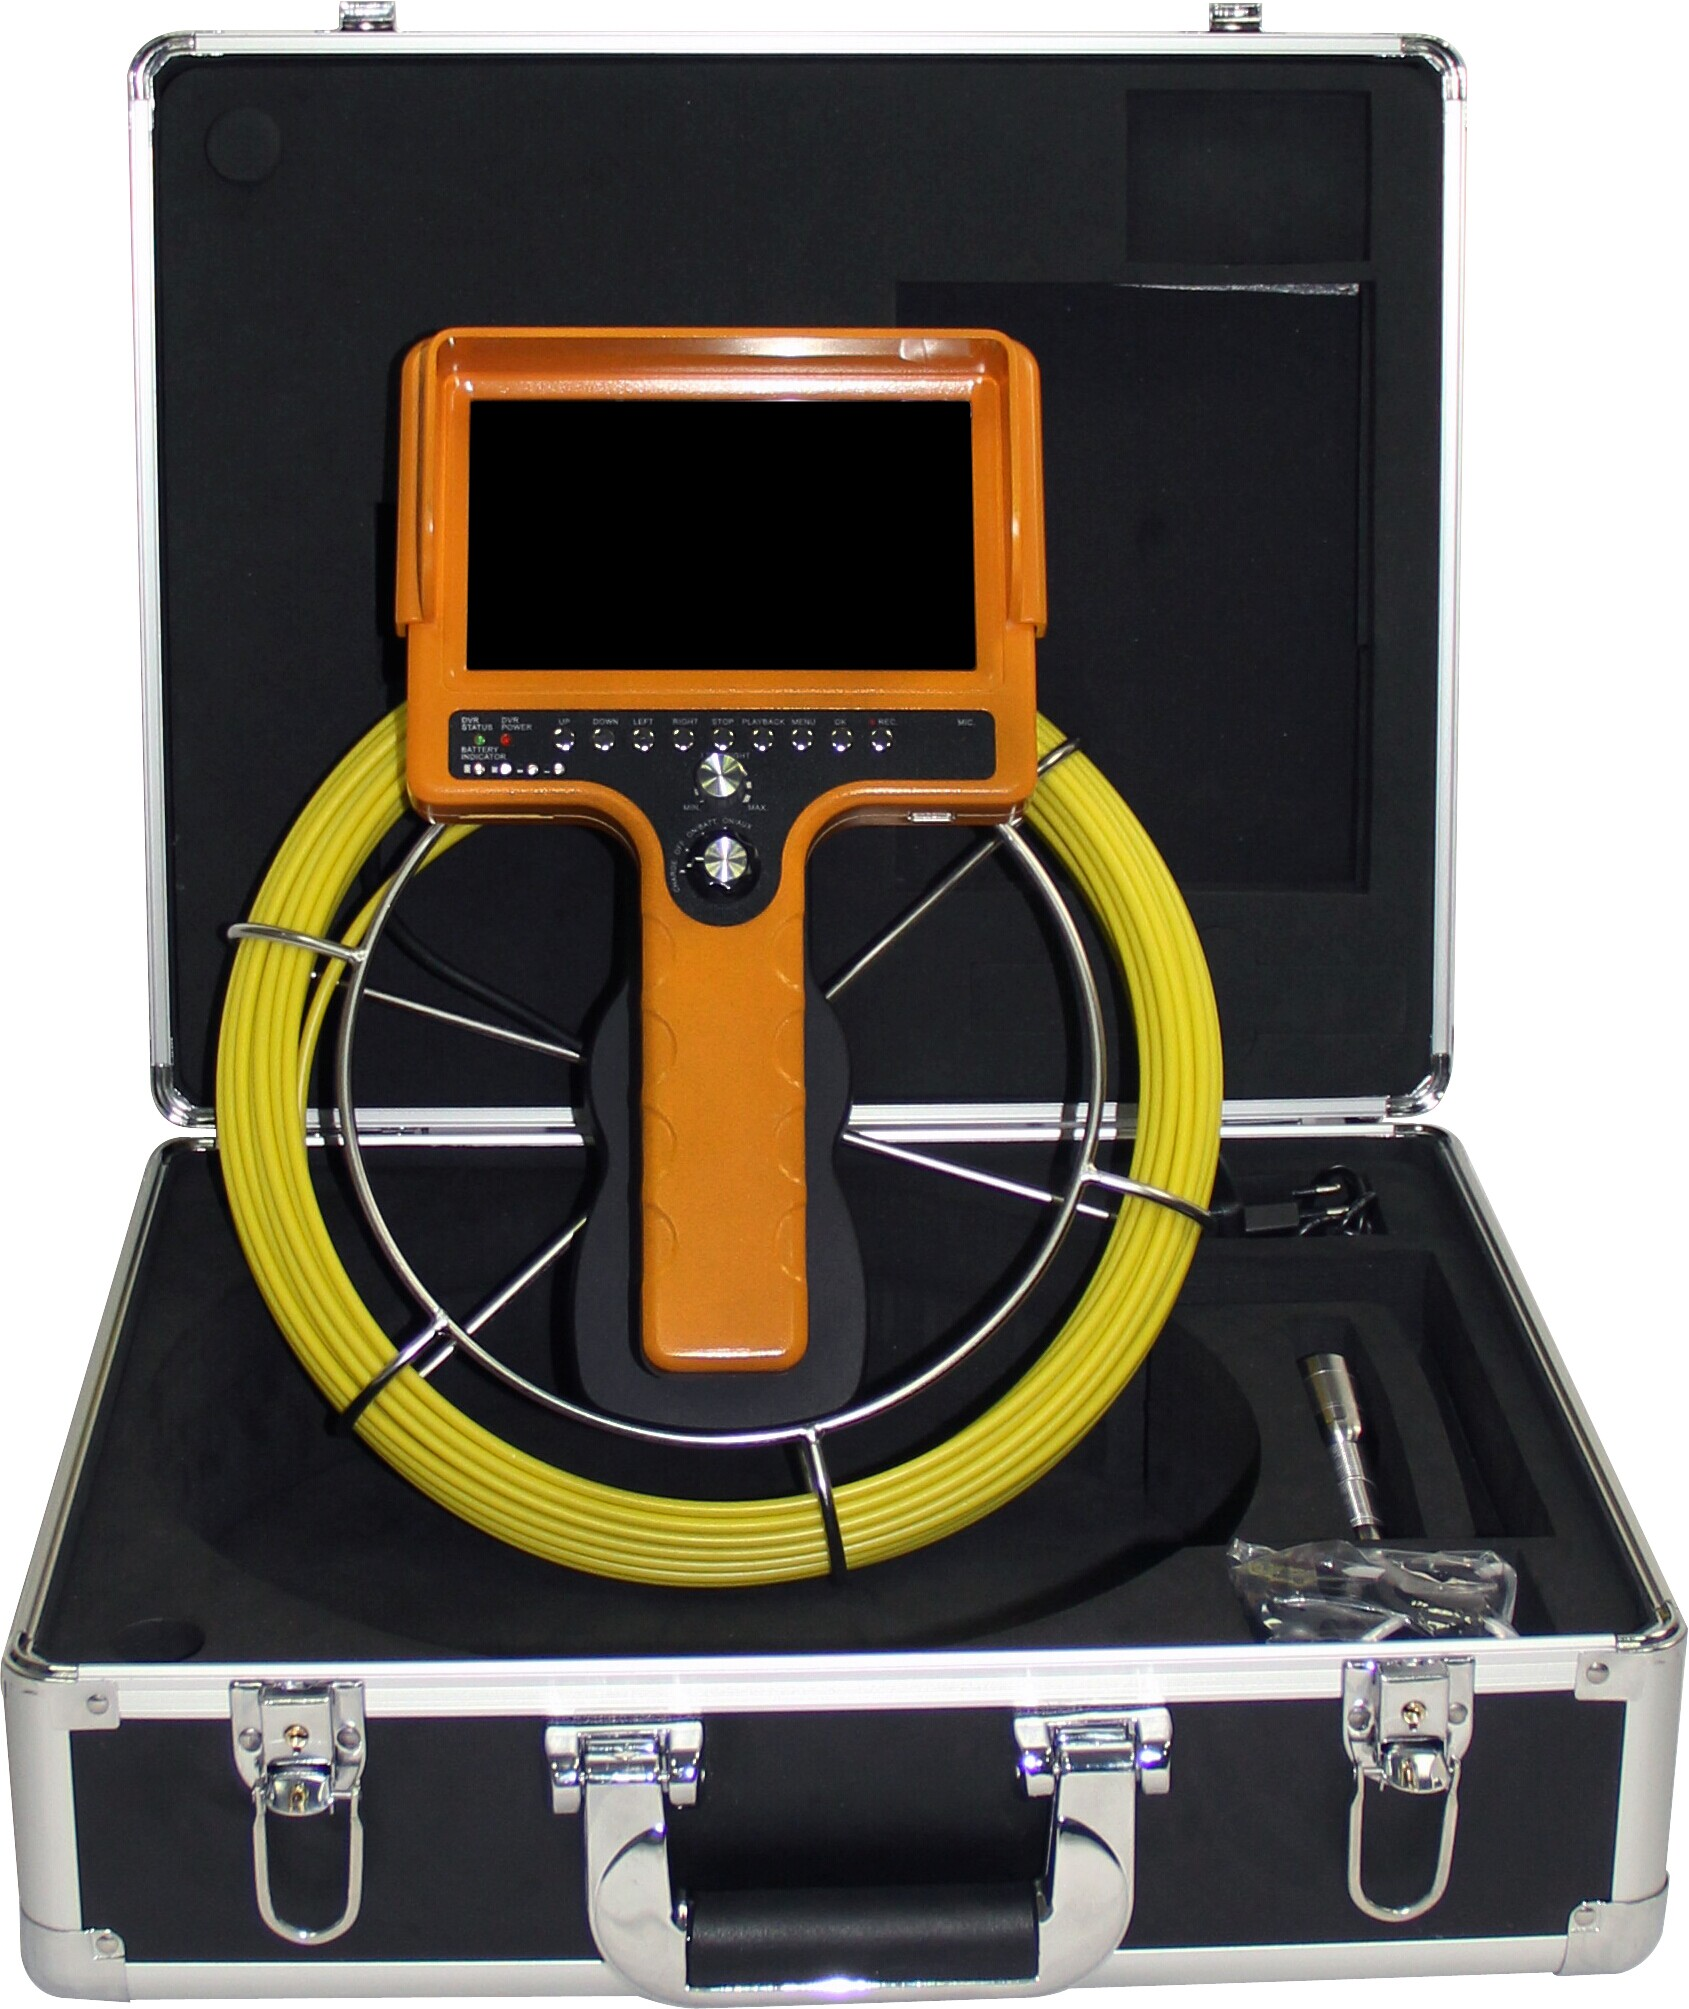 Wide variety of Inspection Cameras to meet your require